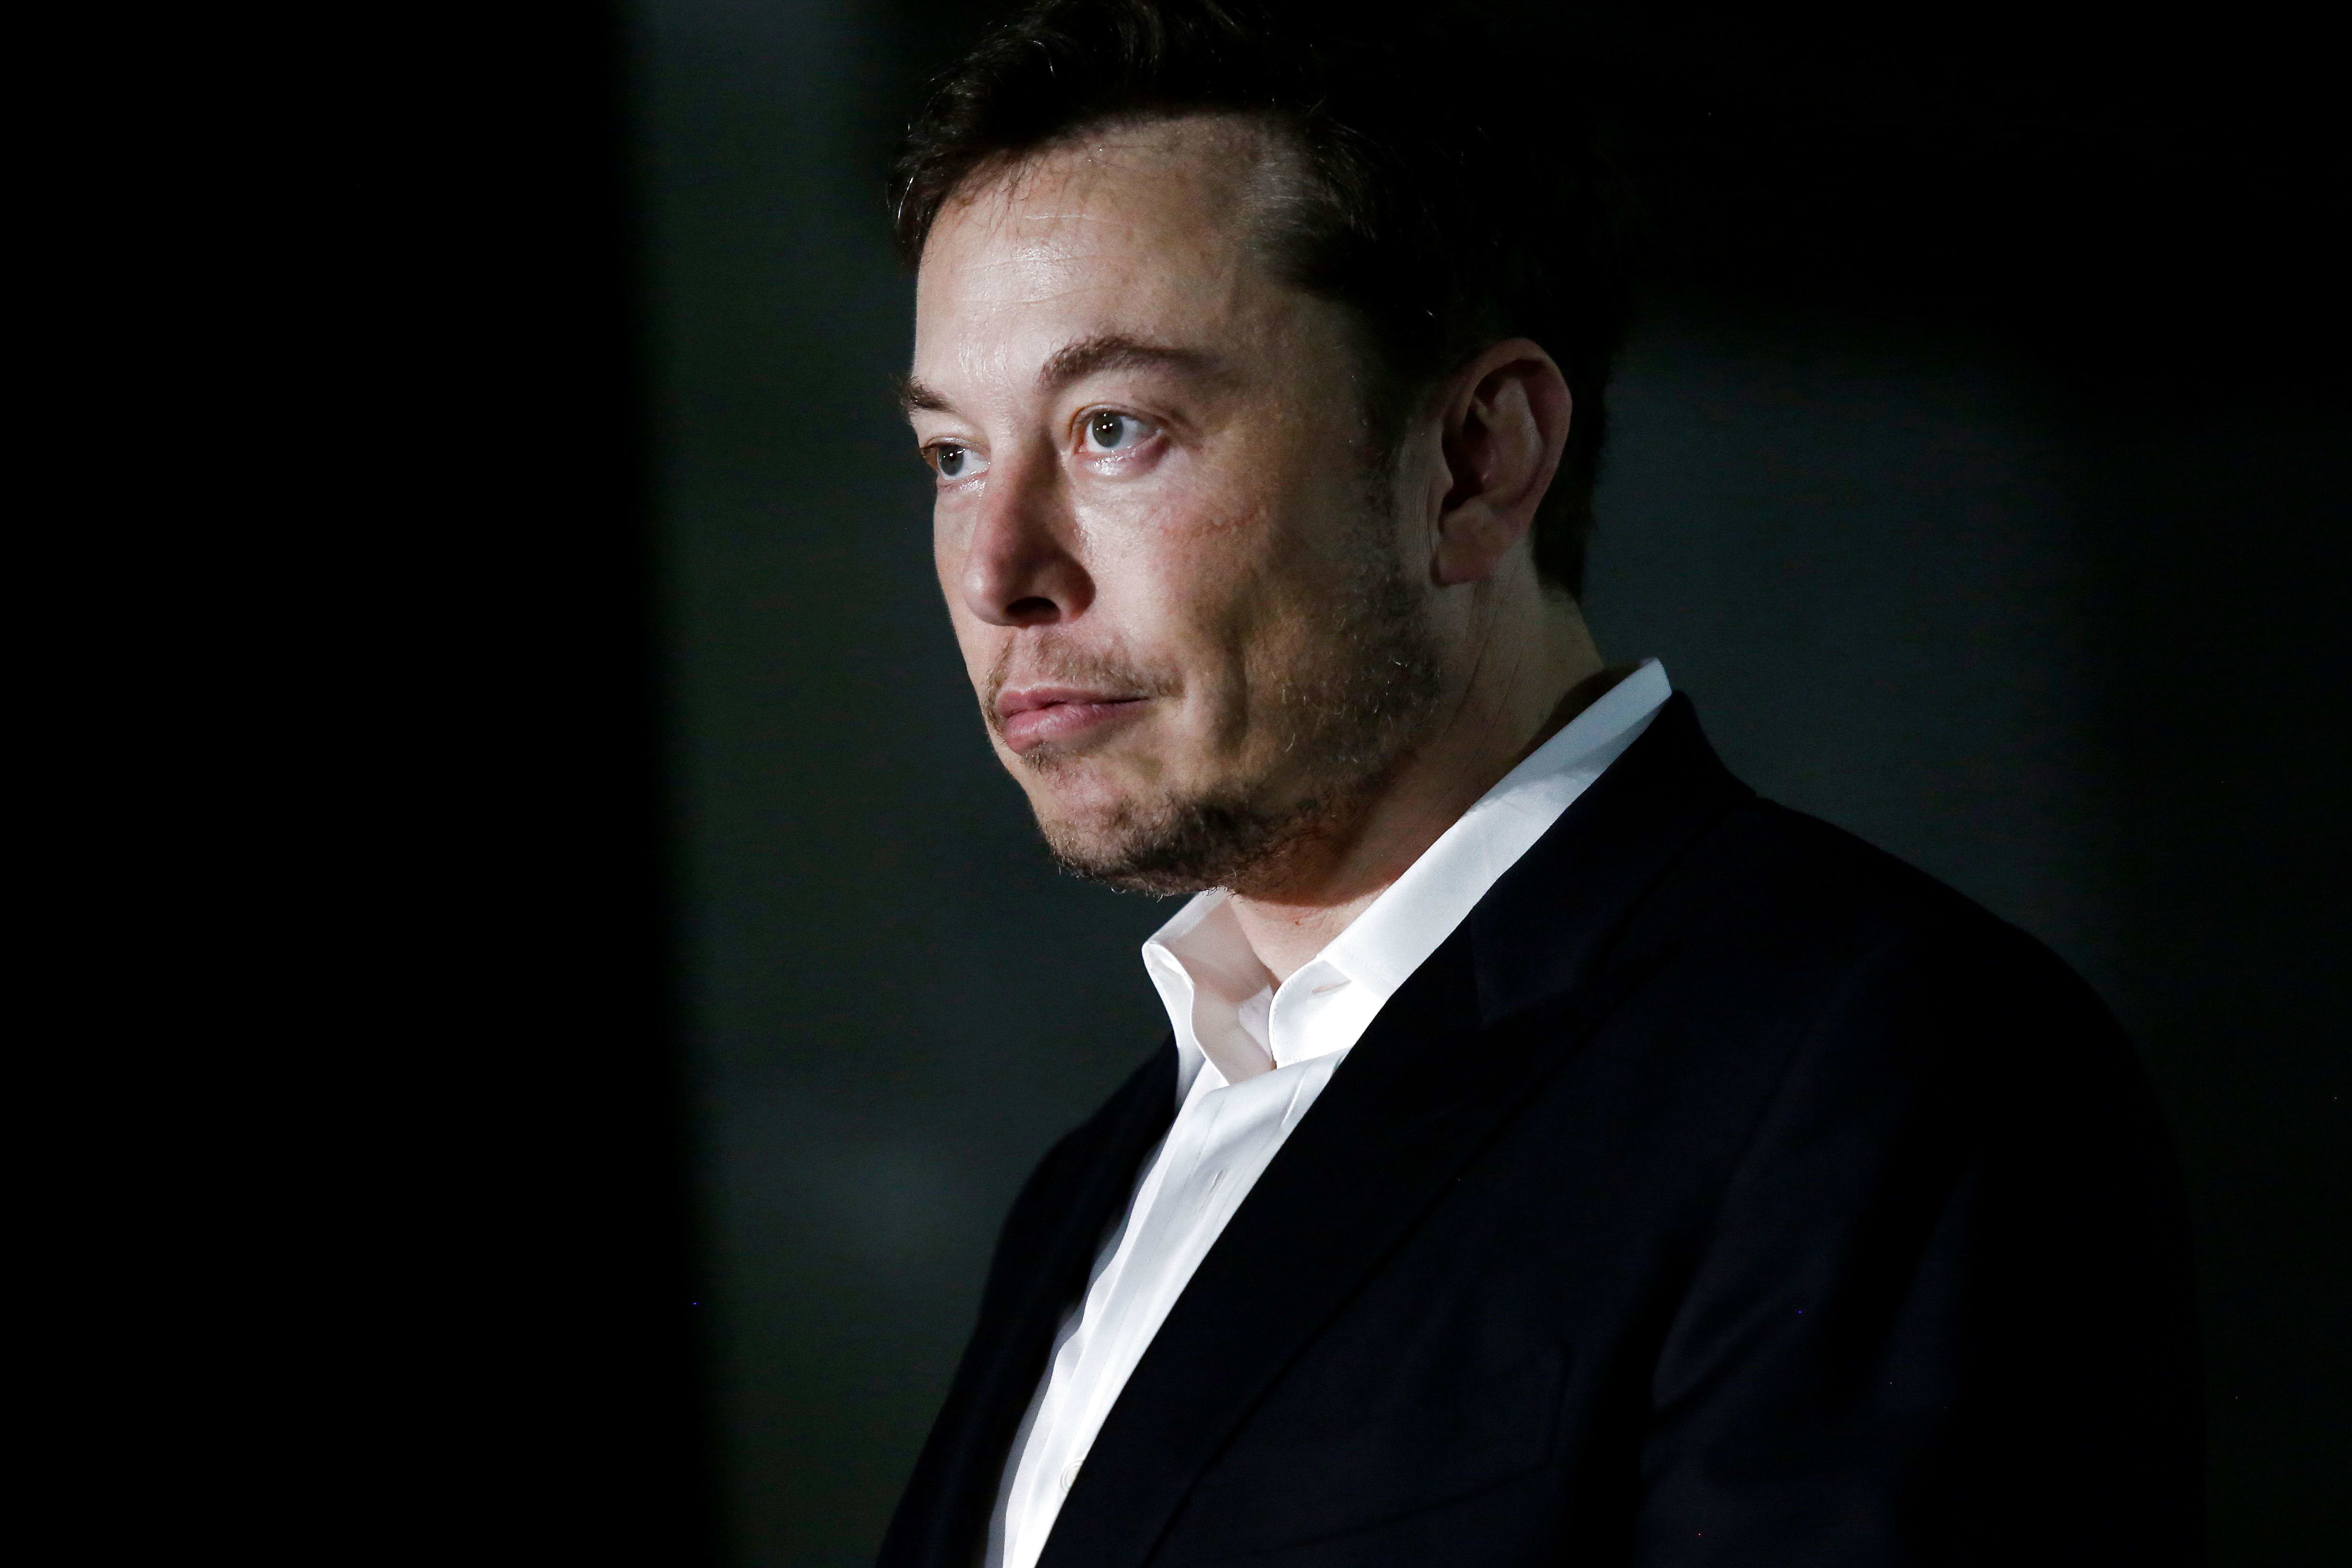 Elon Musk Works 80 Hour Weeks Here S How That Impacts Your Health